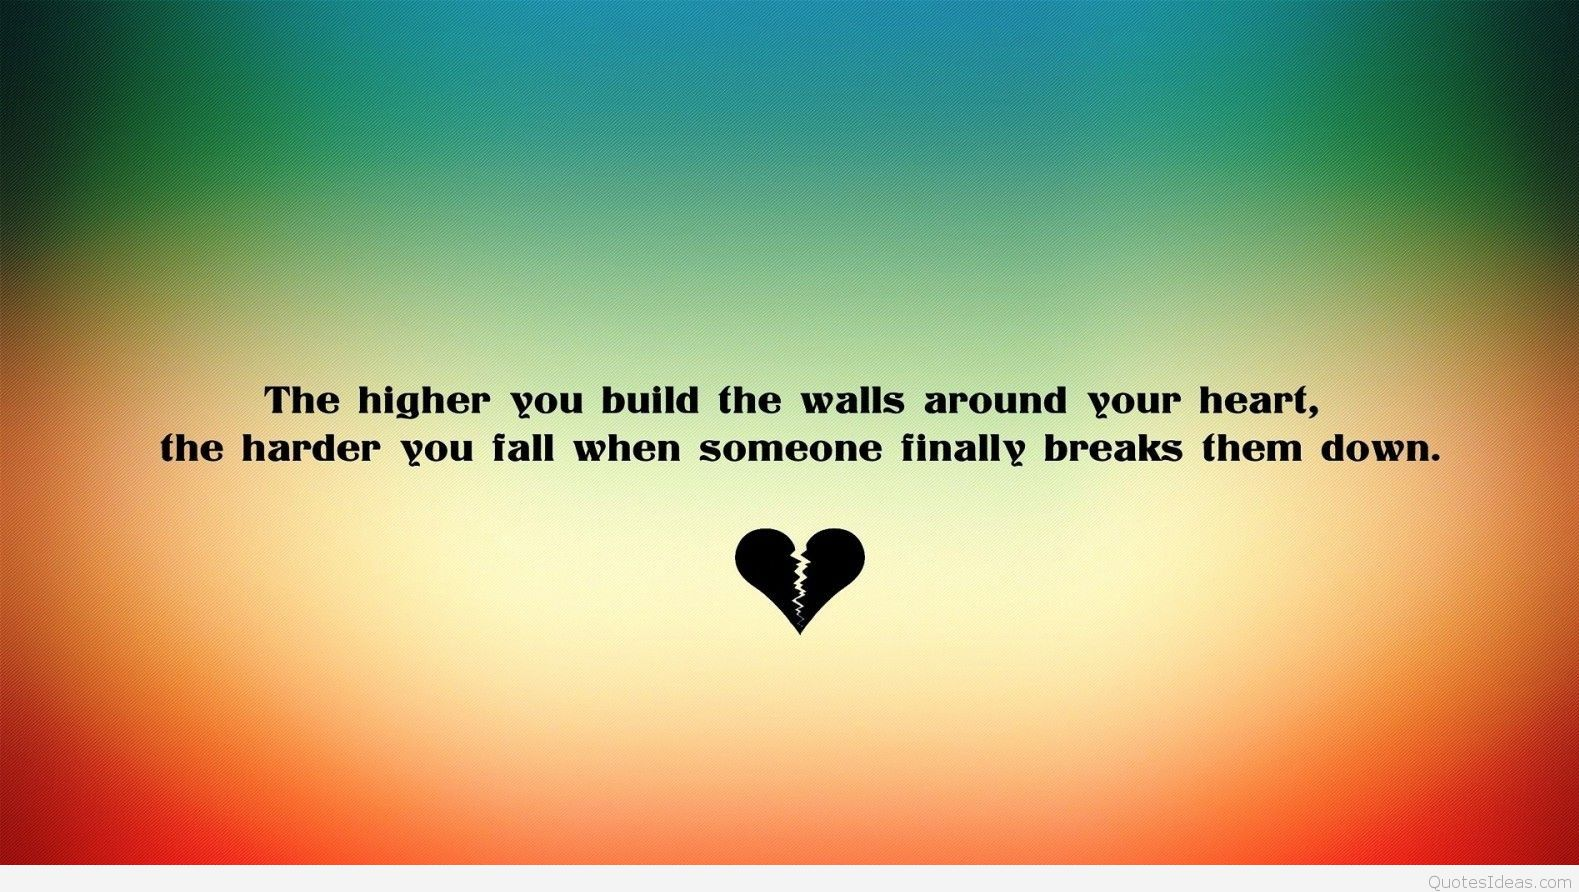 Broken heart sad quotes with wallpapers images hd 2016 1579x892